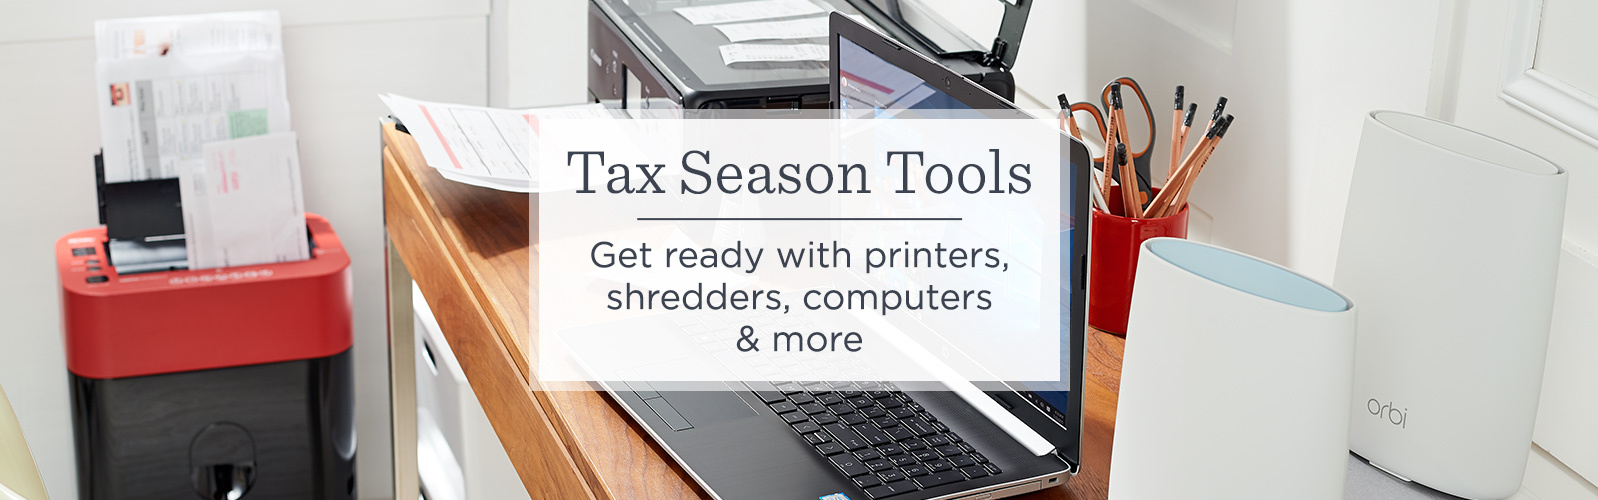 Tax Season Tools Get ready with printers, shredders, computers & more